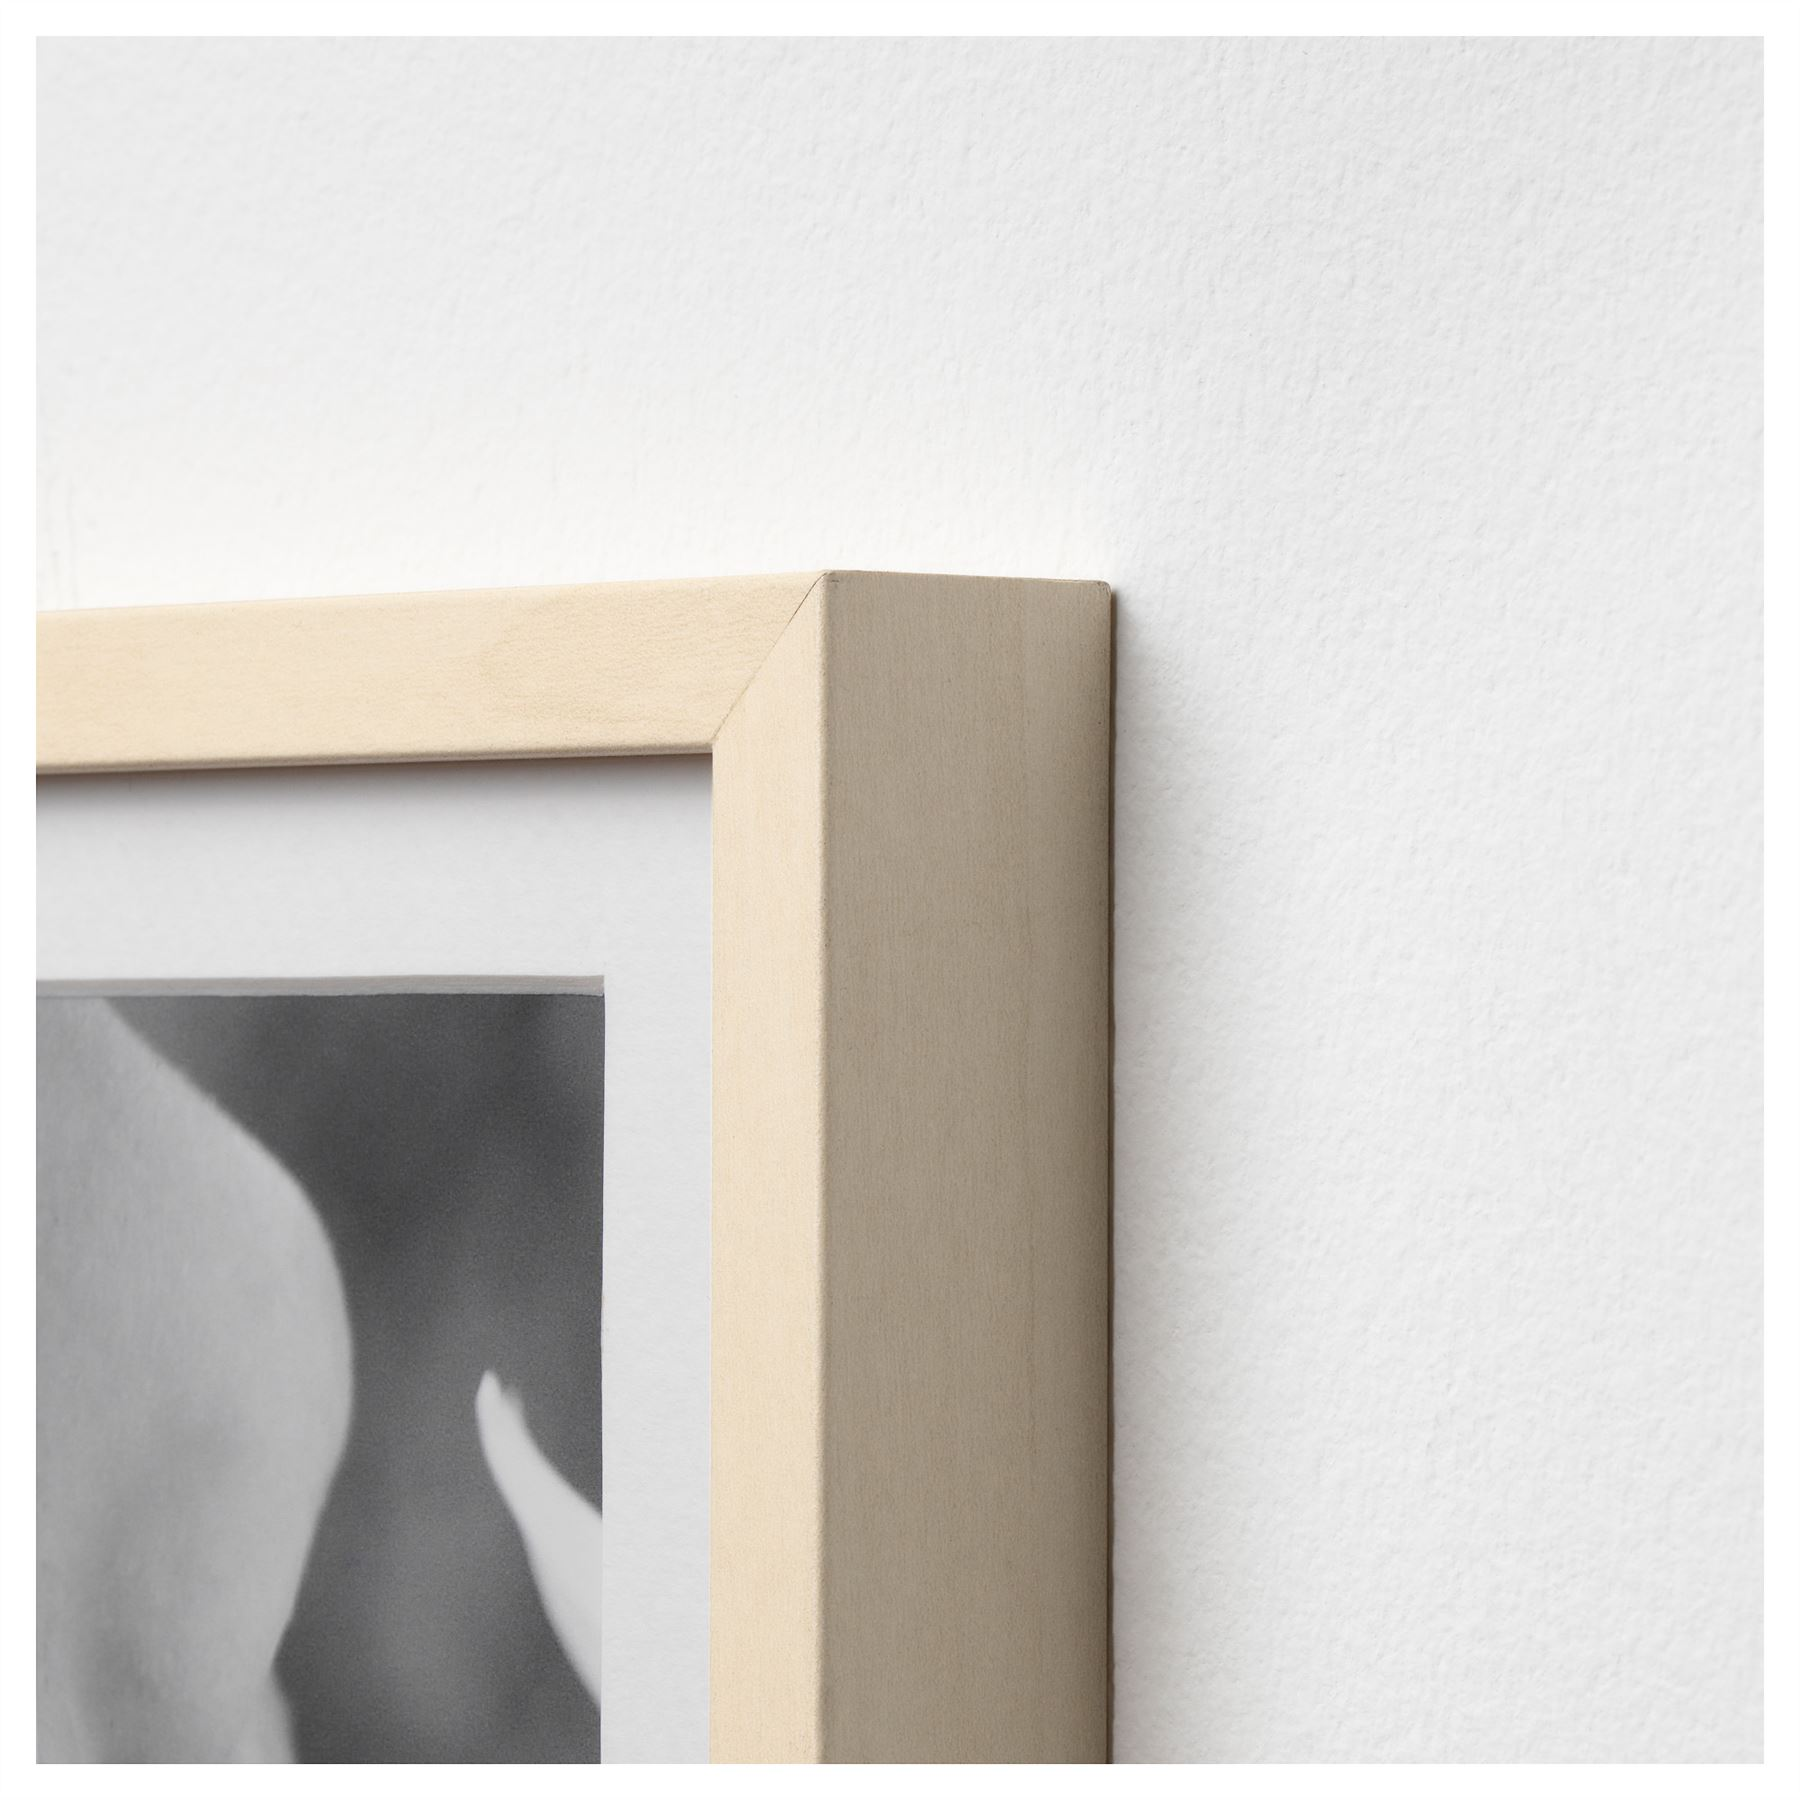 Details about 4x Ikea Hovsta Picture Photo Frame Birch Home Bedroom Living  Room 13x18cm